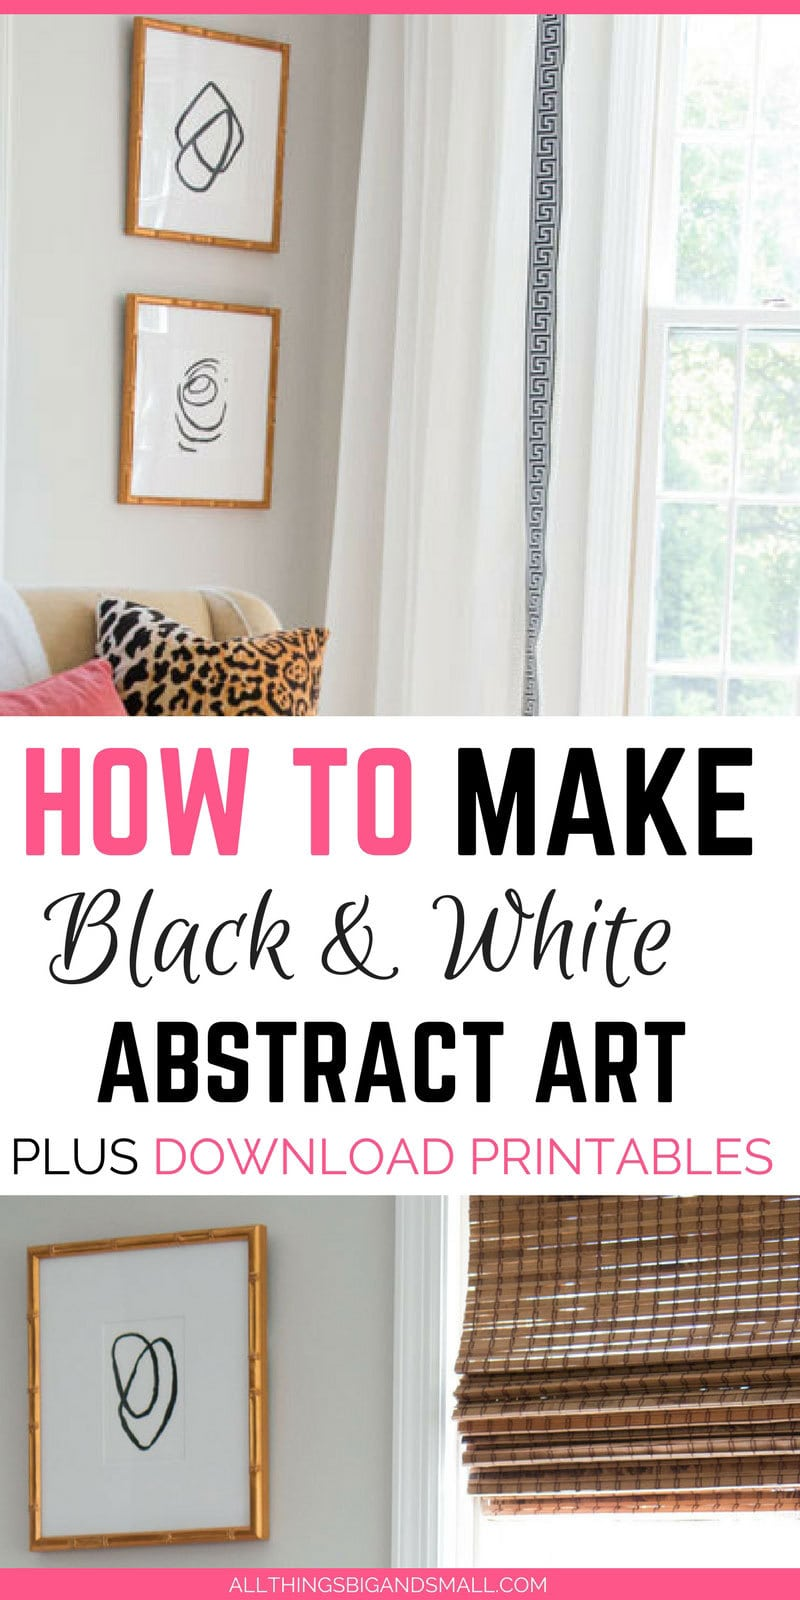 Easiest abstract black and white art that anyone can do PLUS download a printable! #AD | ALL THINGS BIG AND SMALL